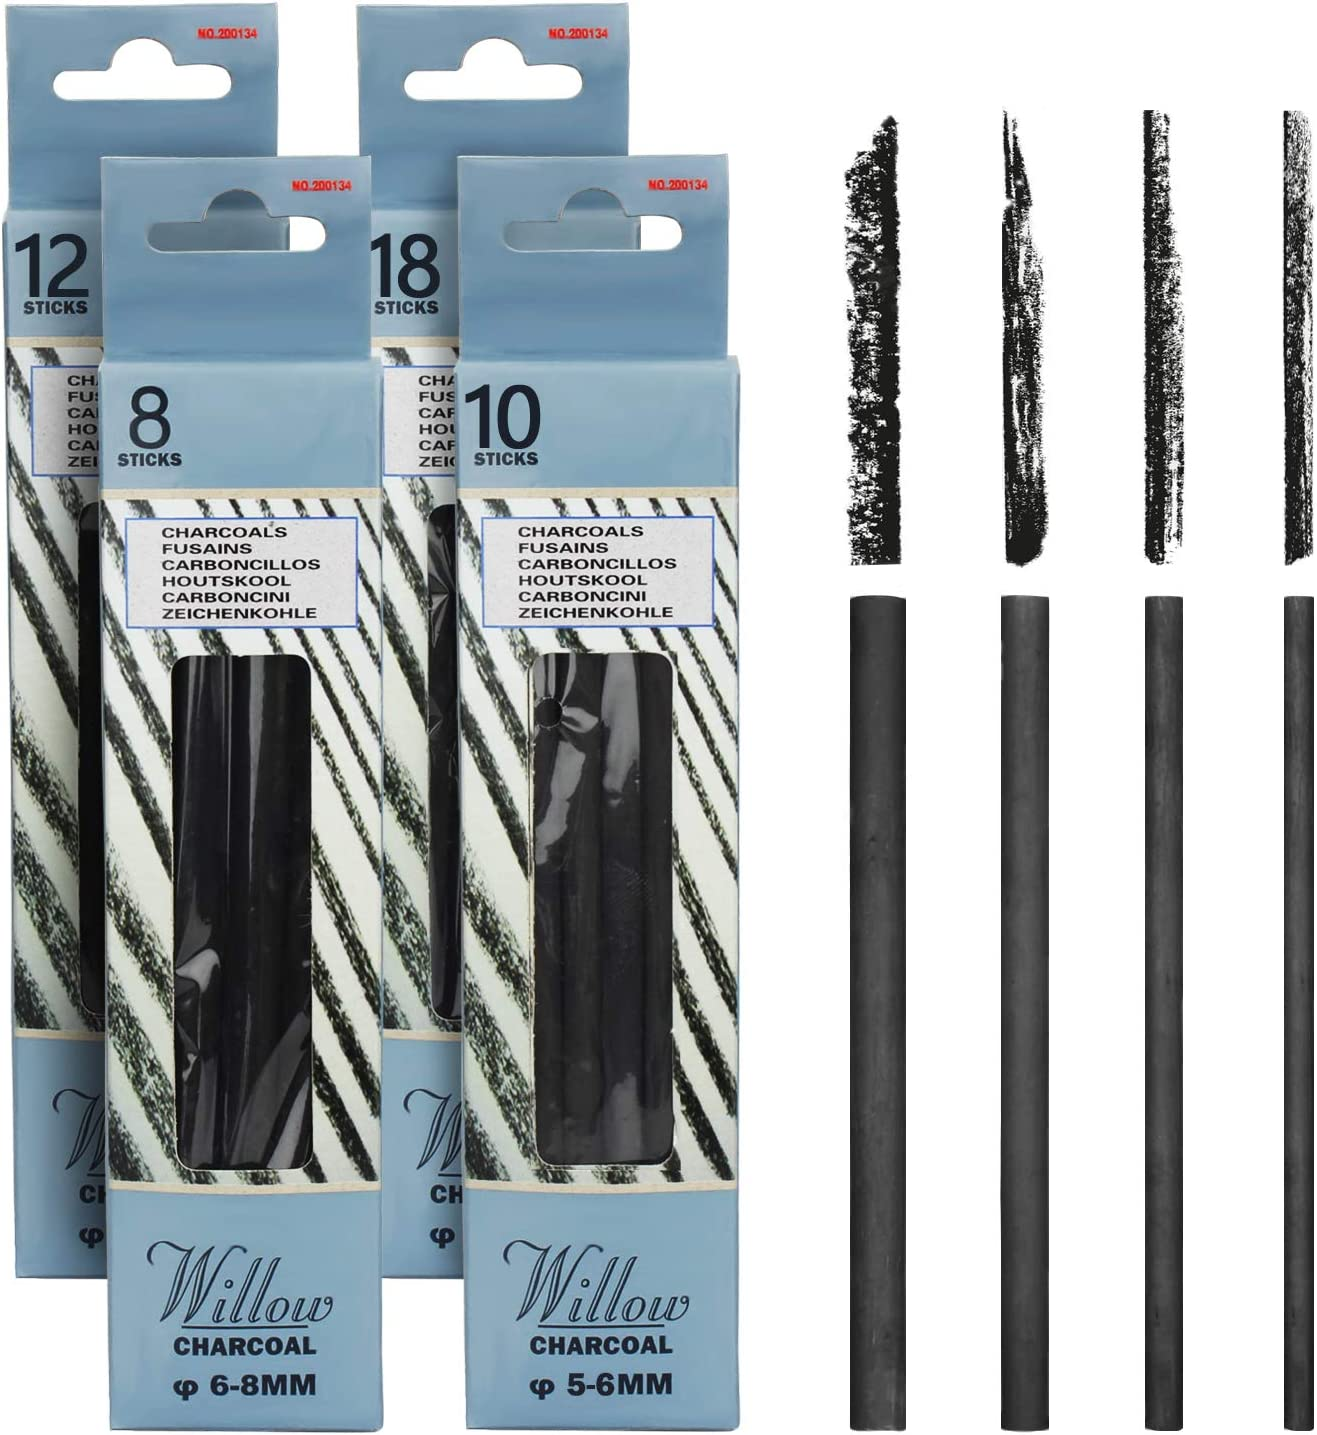 MyLifeUNIT Vine Charcoal Sticks 4 Pack Quality inspection NEW before selling ☆ Pencils Willow